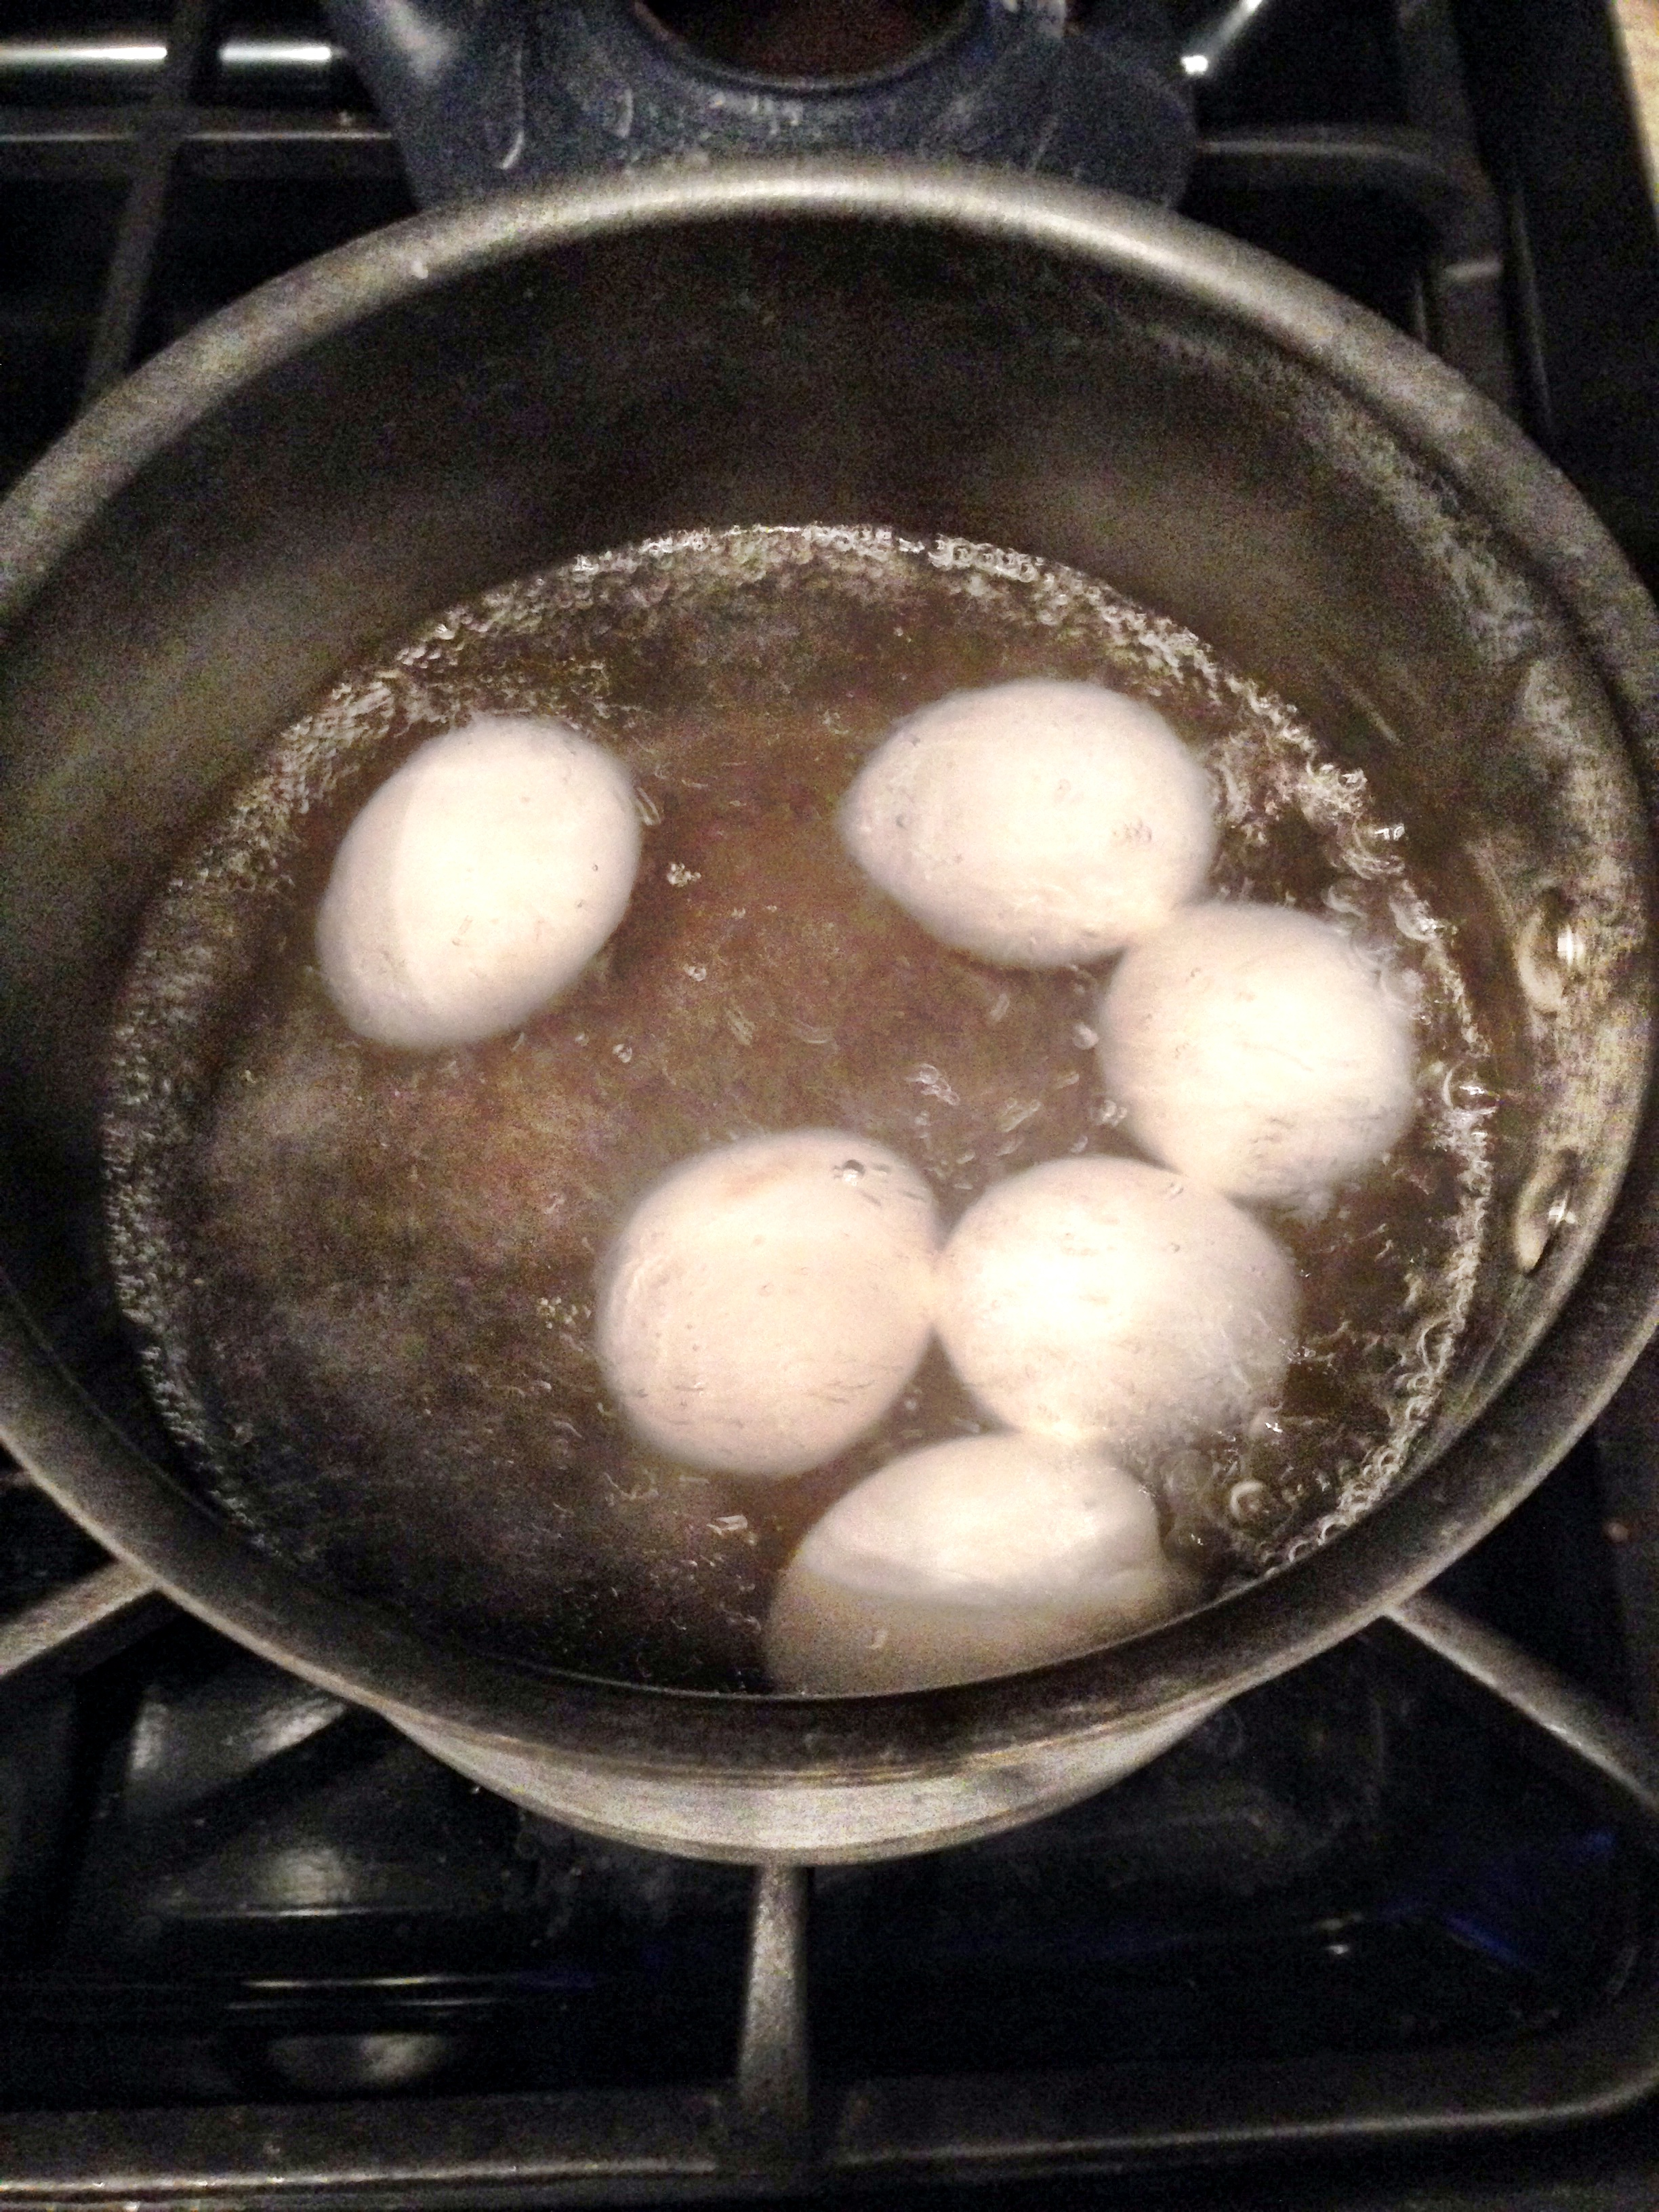 The Easiest Way to Boil and Peel Eggs